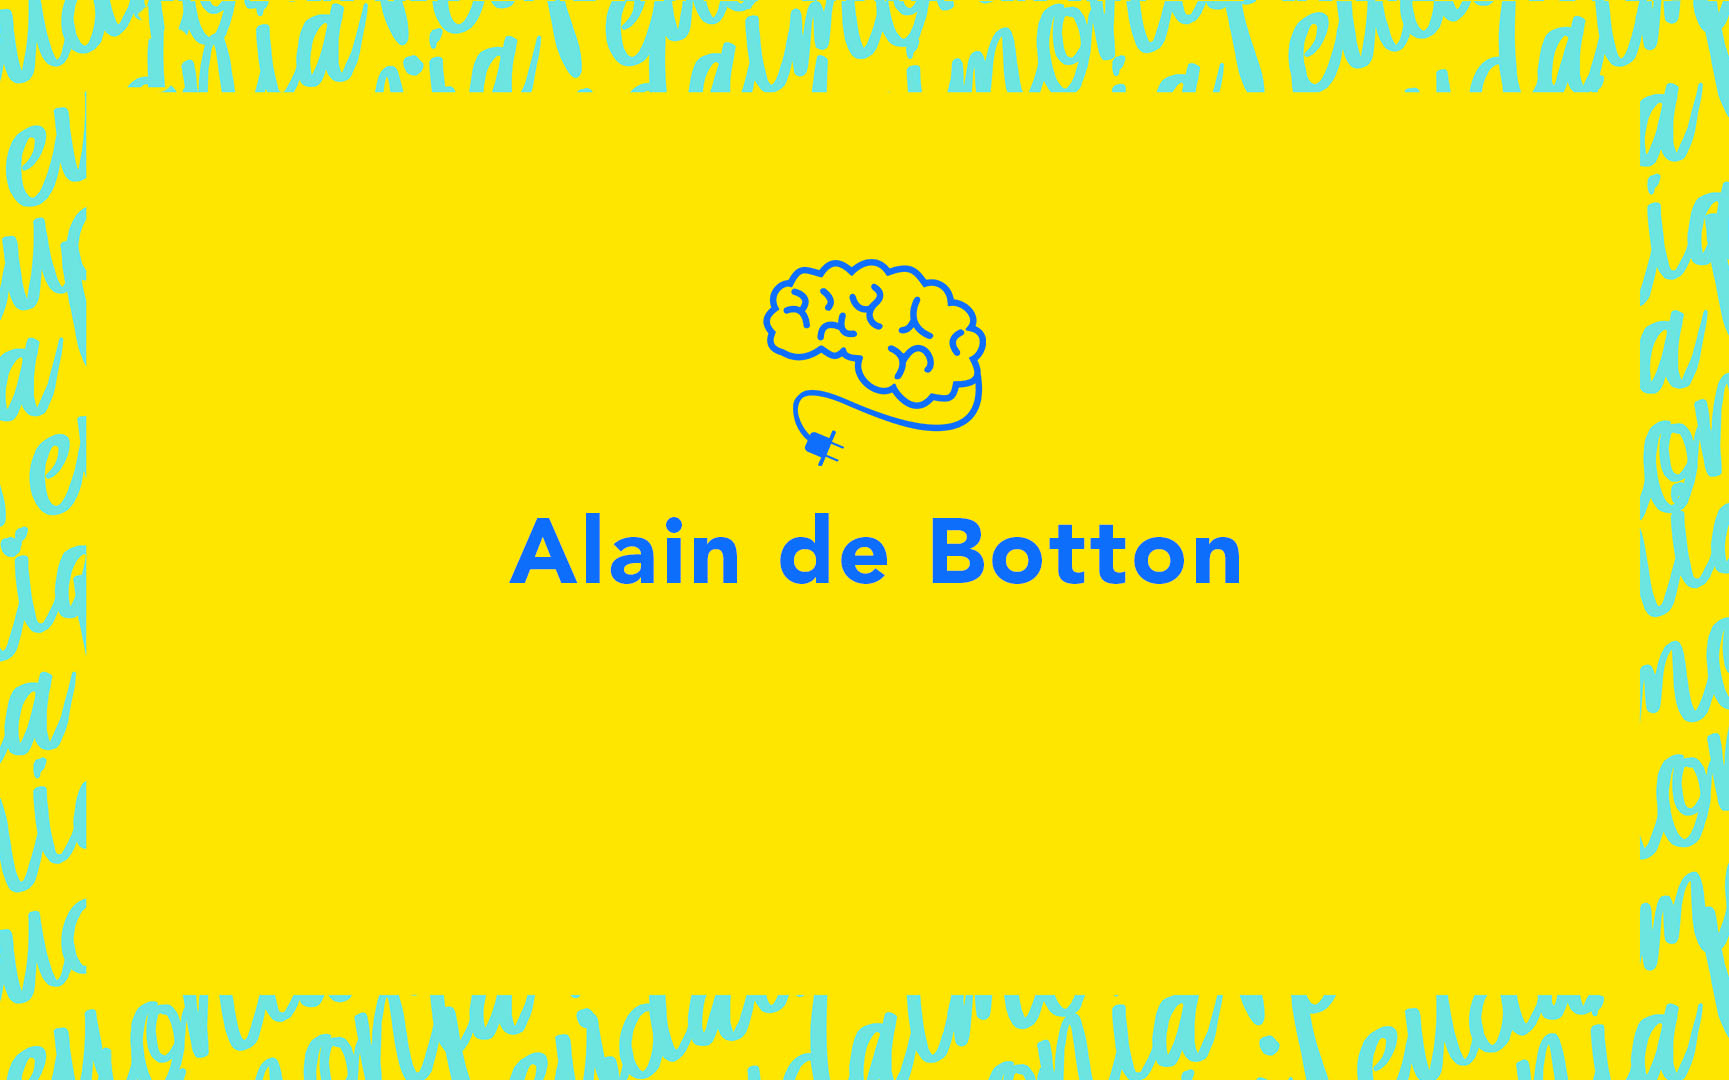 alain de botton discusses systematically training our minds